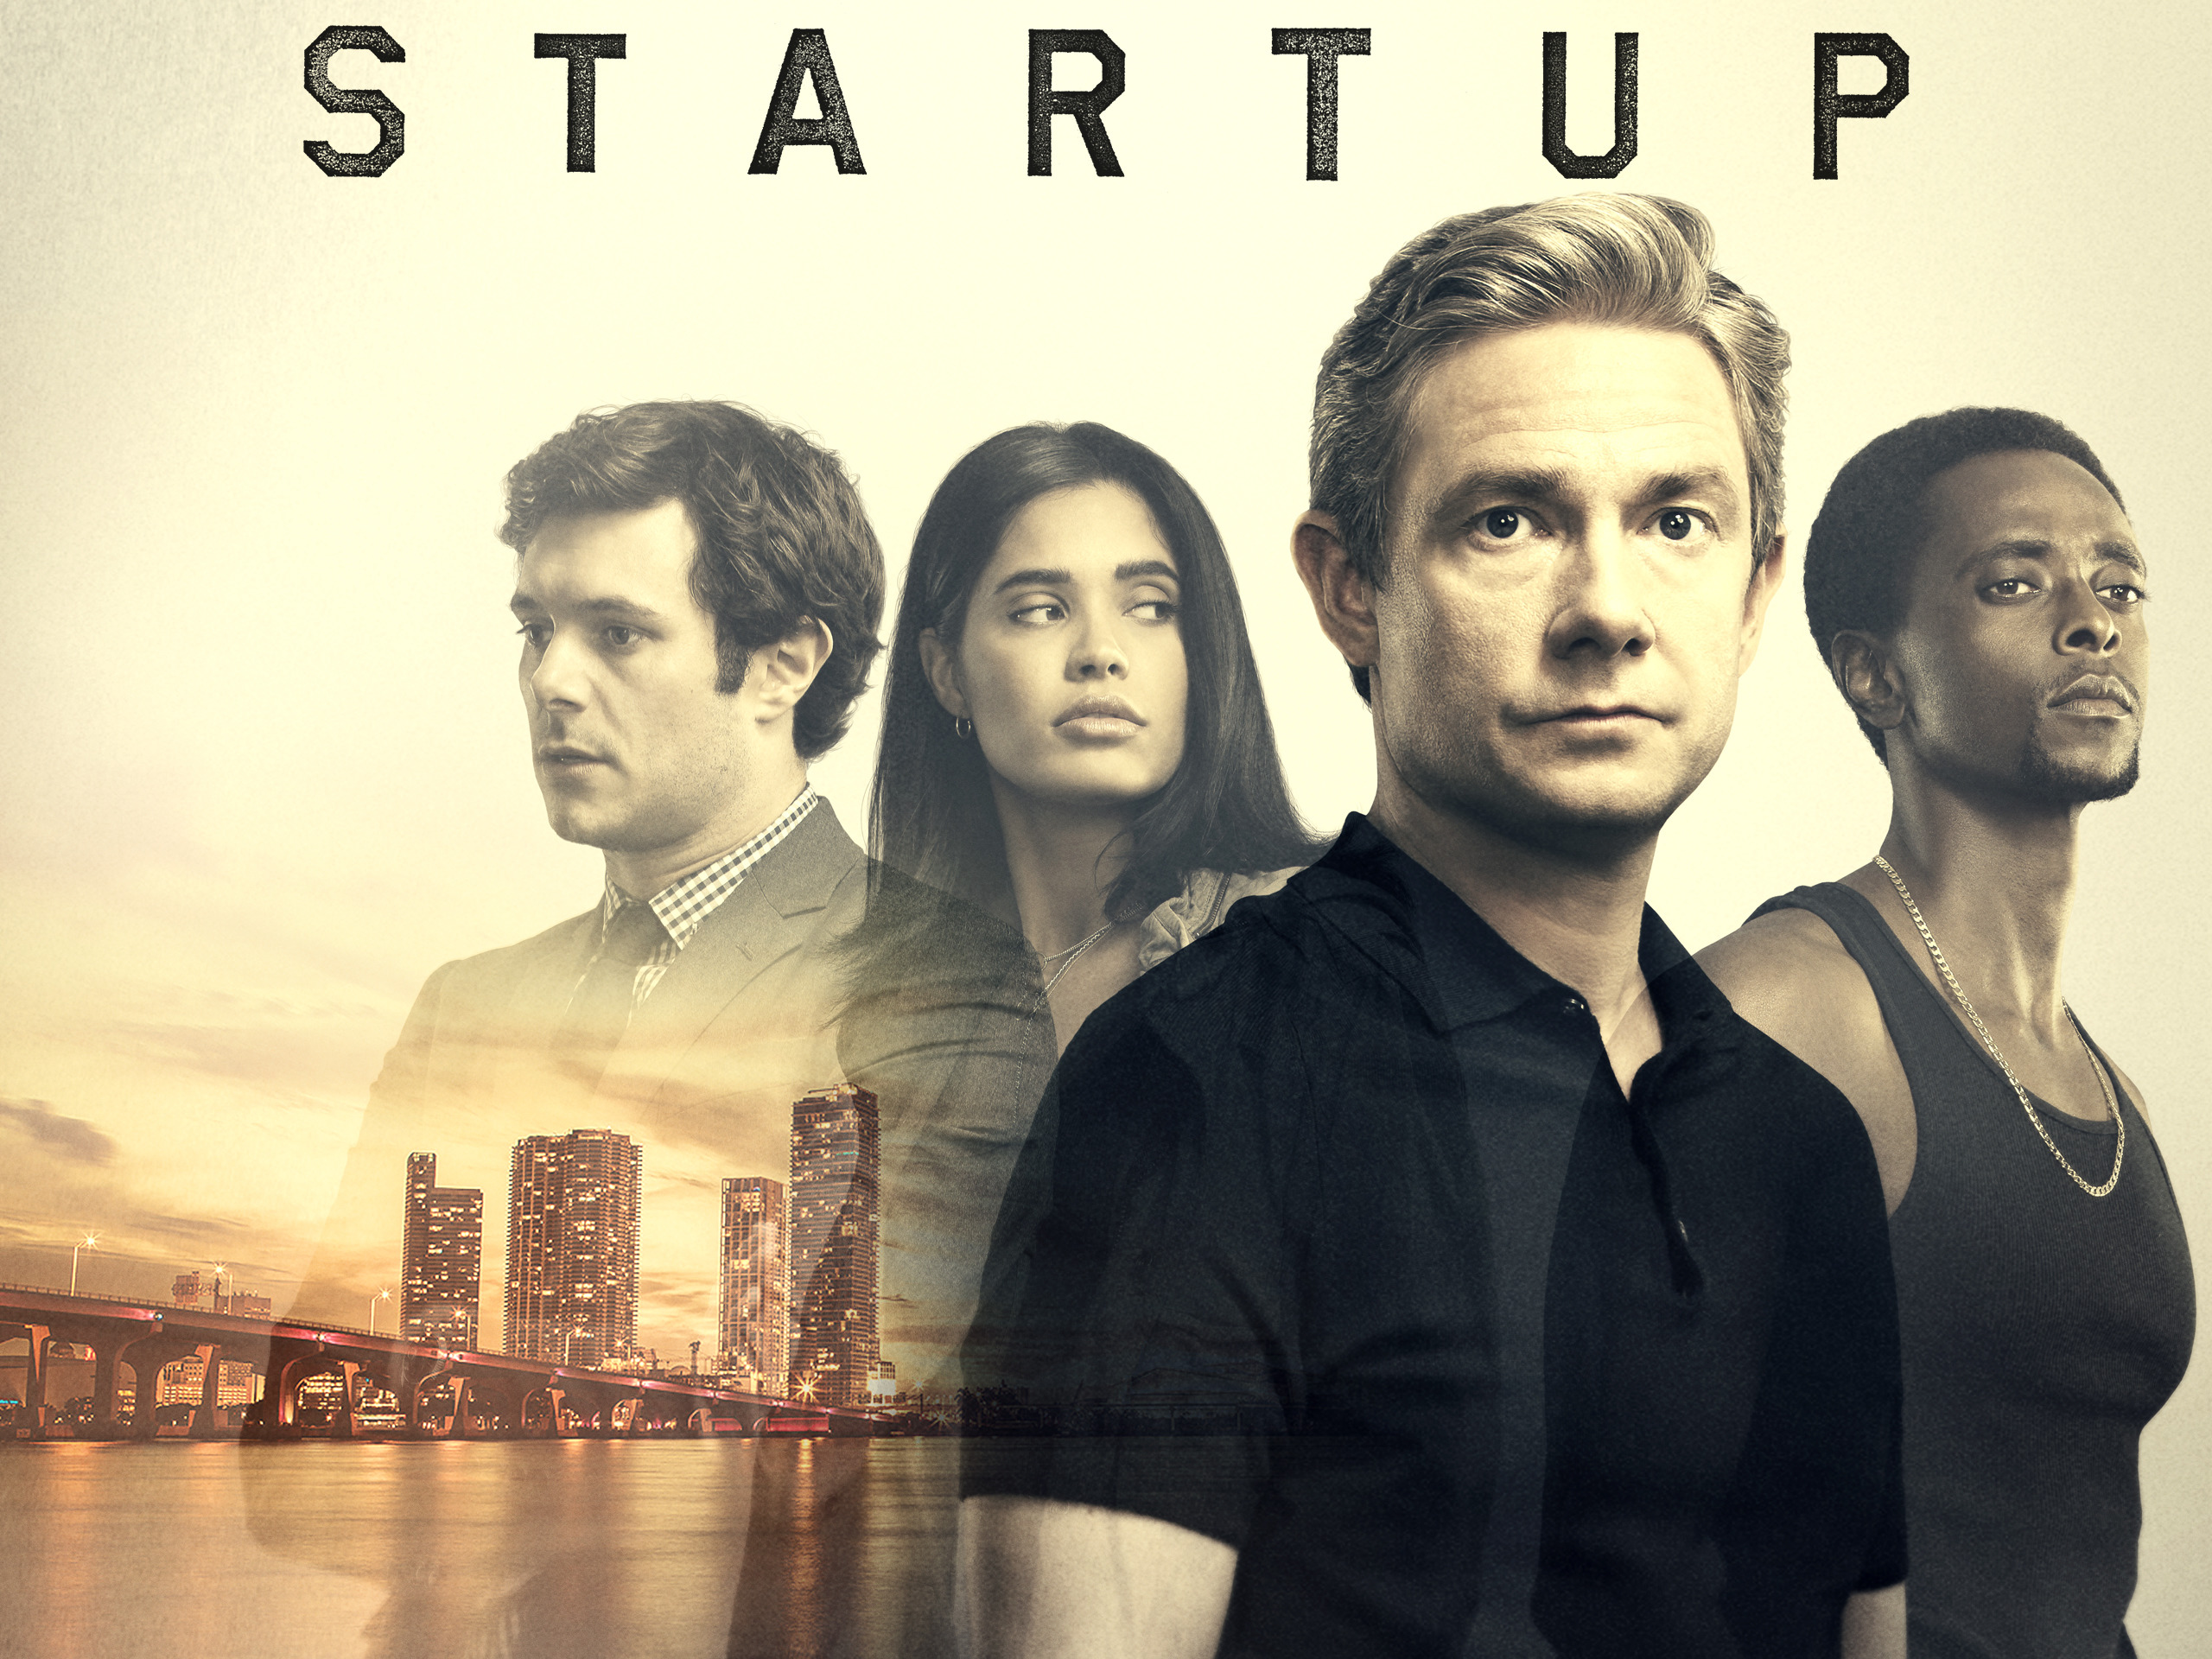 15 TV Shows Every Entrepreneur Should Watch on Netflix